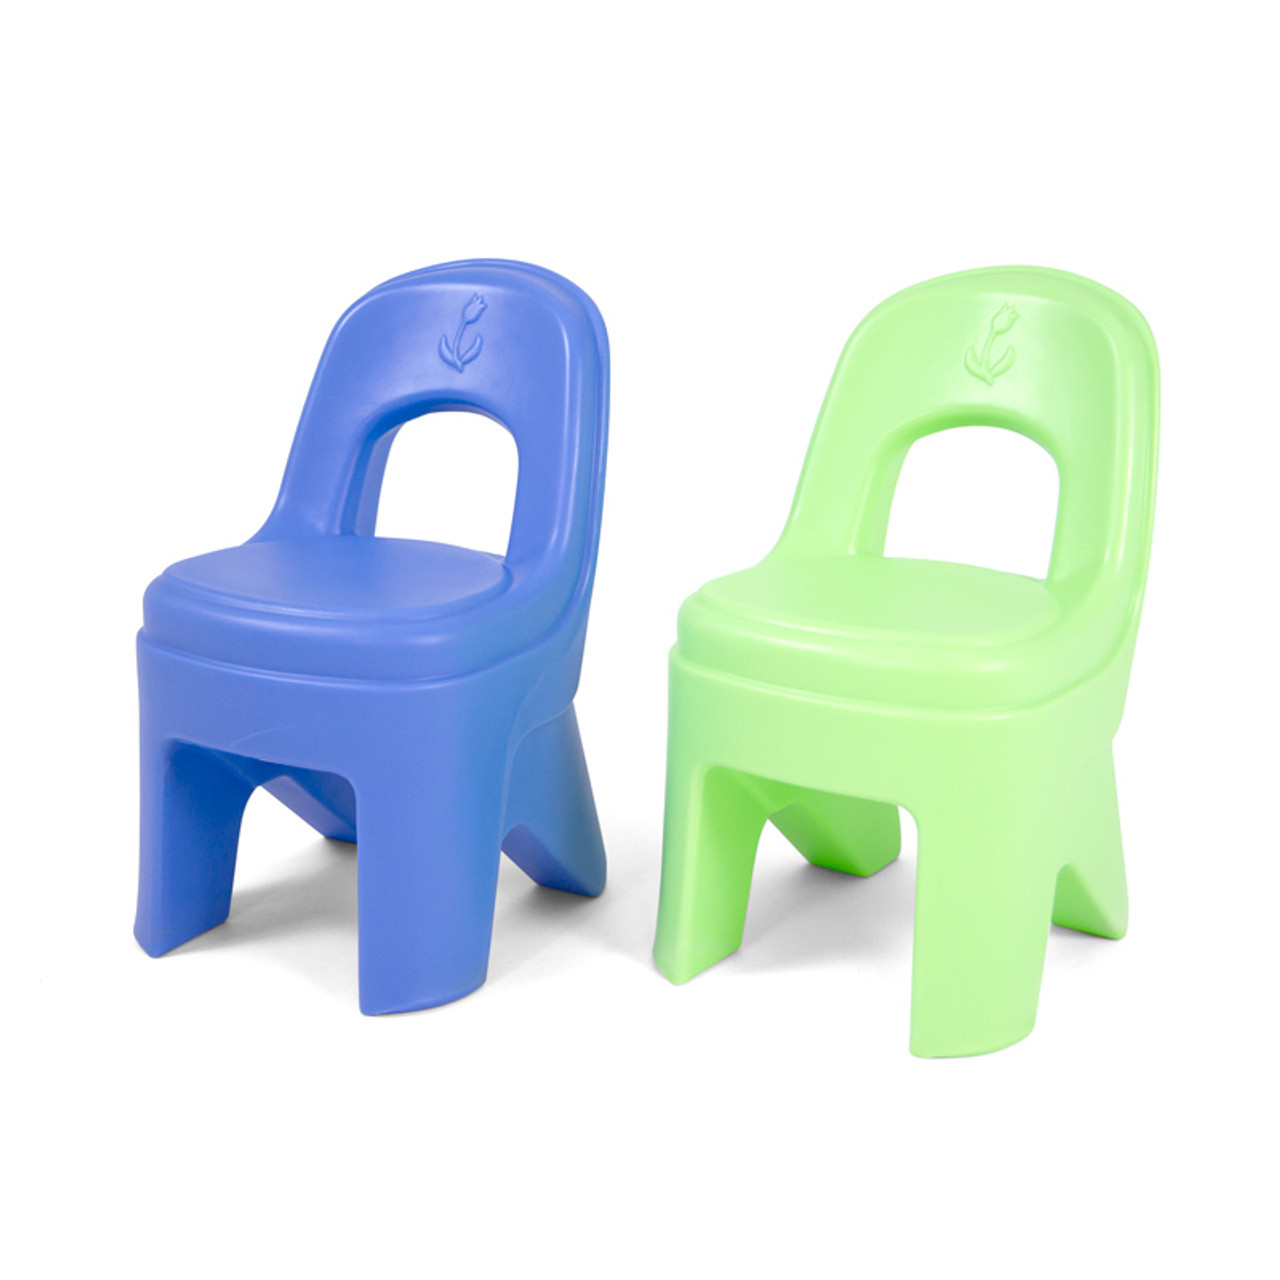 Awe Inspiring Play Around Chairs Periwinkle Lime 2 Pack Gmtry Best Dining Table And Chair Ideas Images Gmtryco